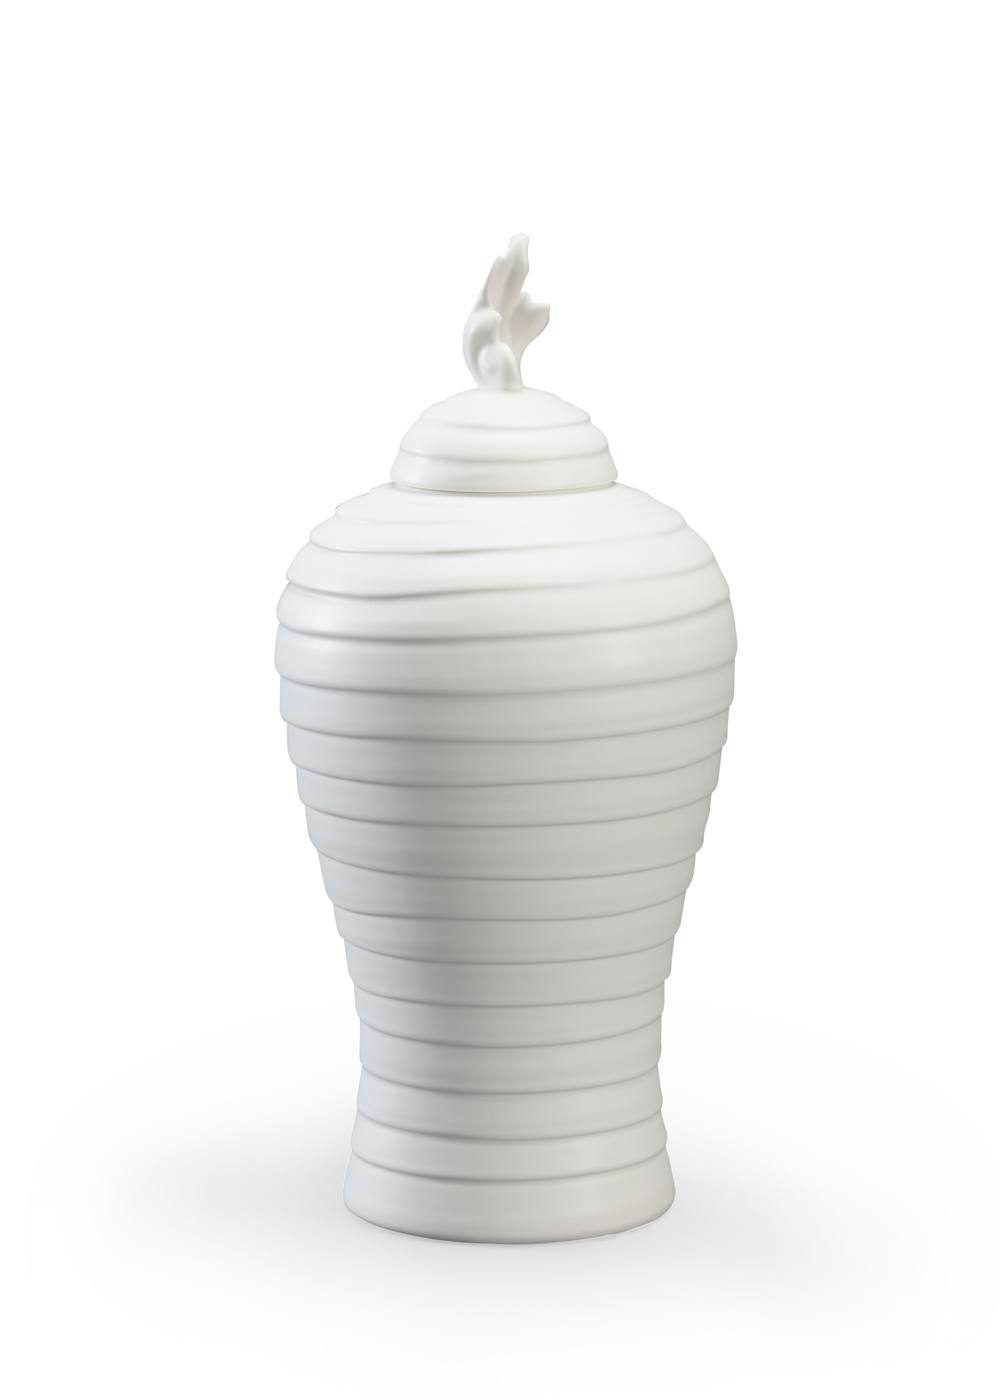 Chelsea House - Matte White Hive Urn